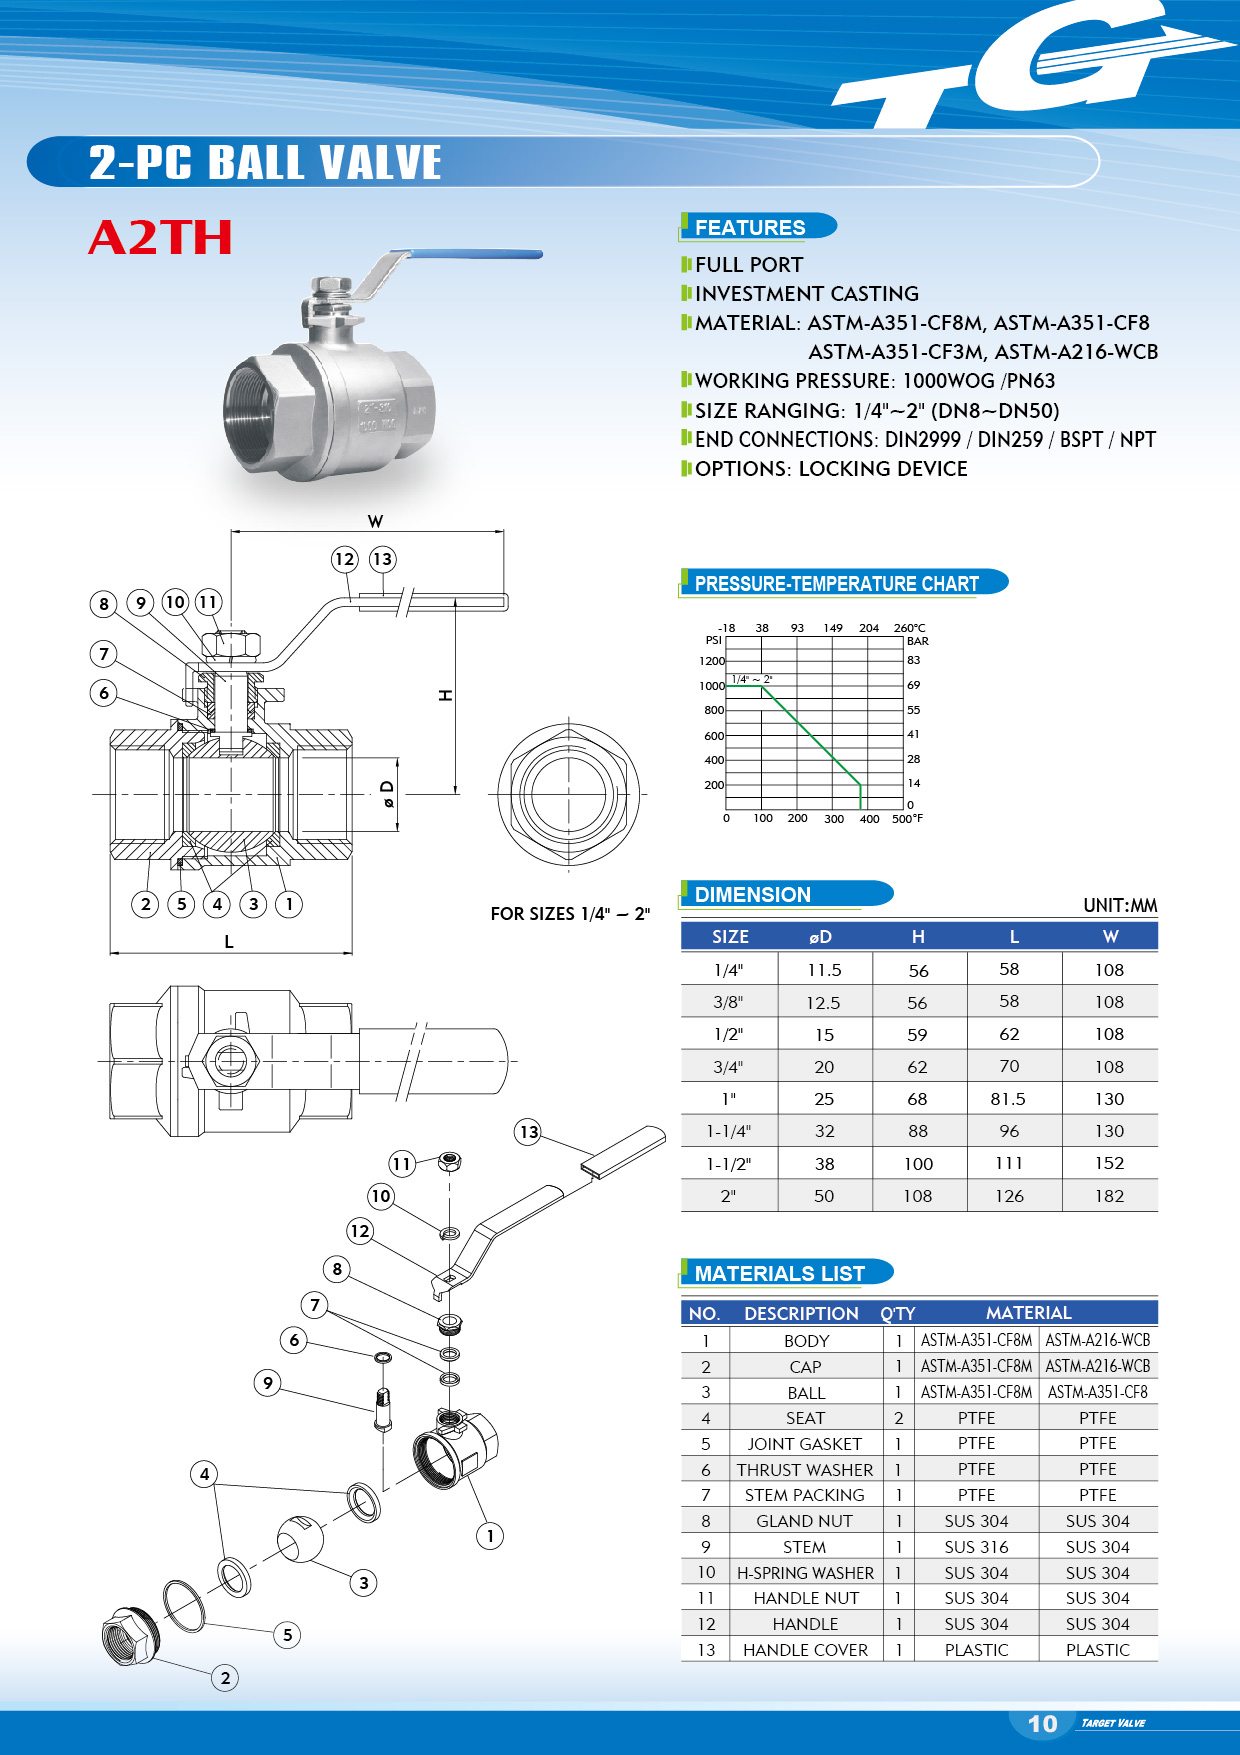 2 PC BALL VALVE - A2TH